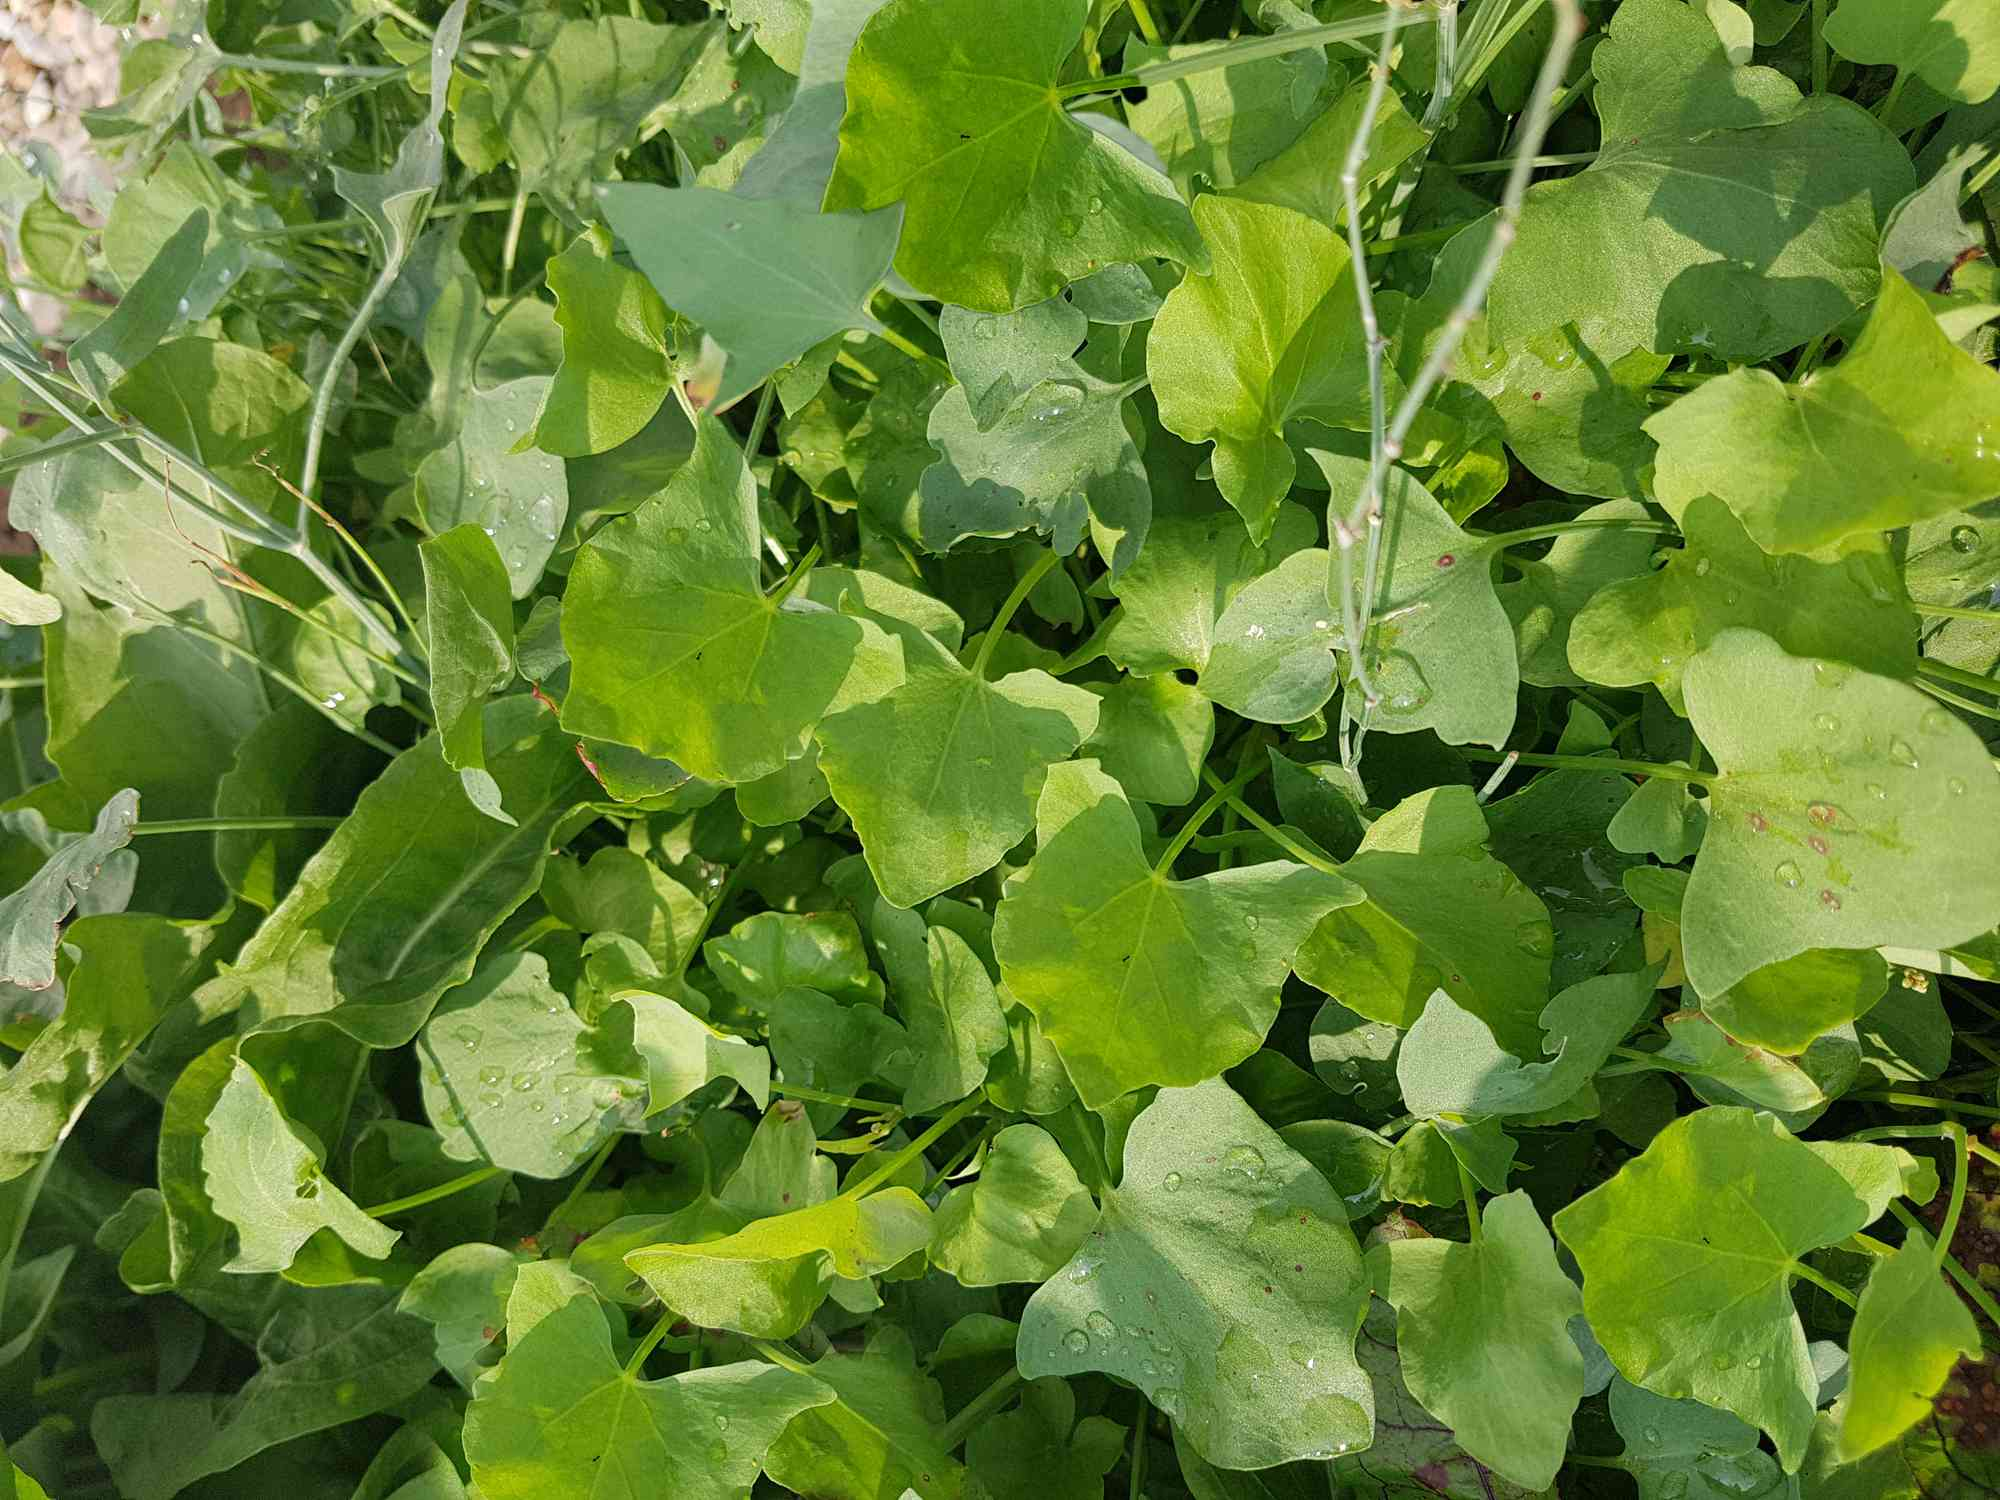 A patch of green sorrel leaves in a garden